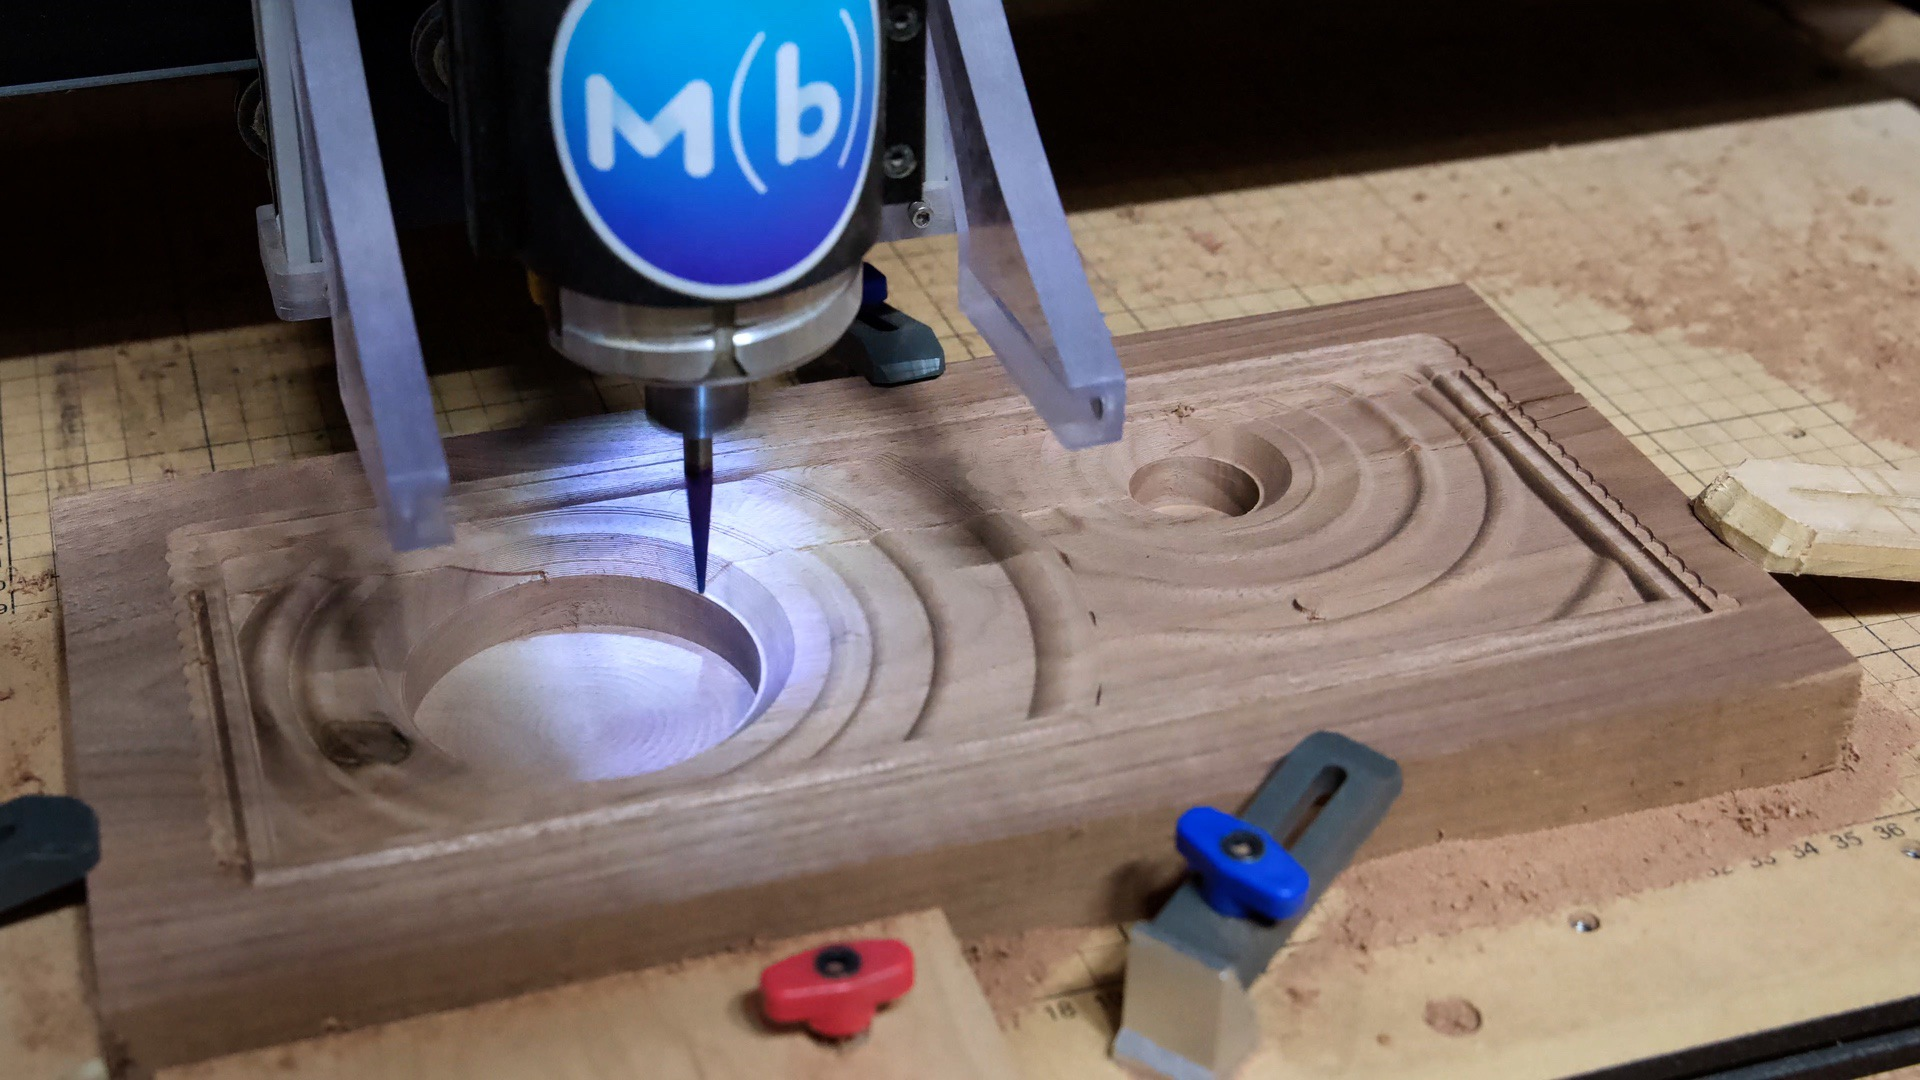 Carve the walnut Bluetooth speaker face out on the CNC